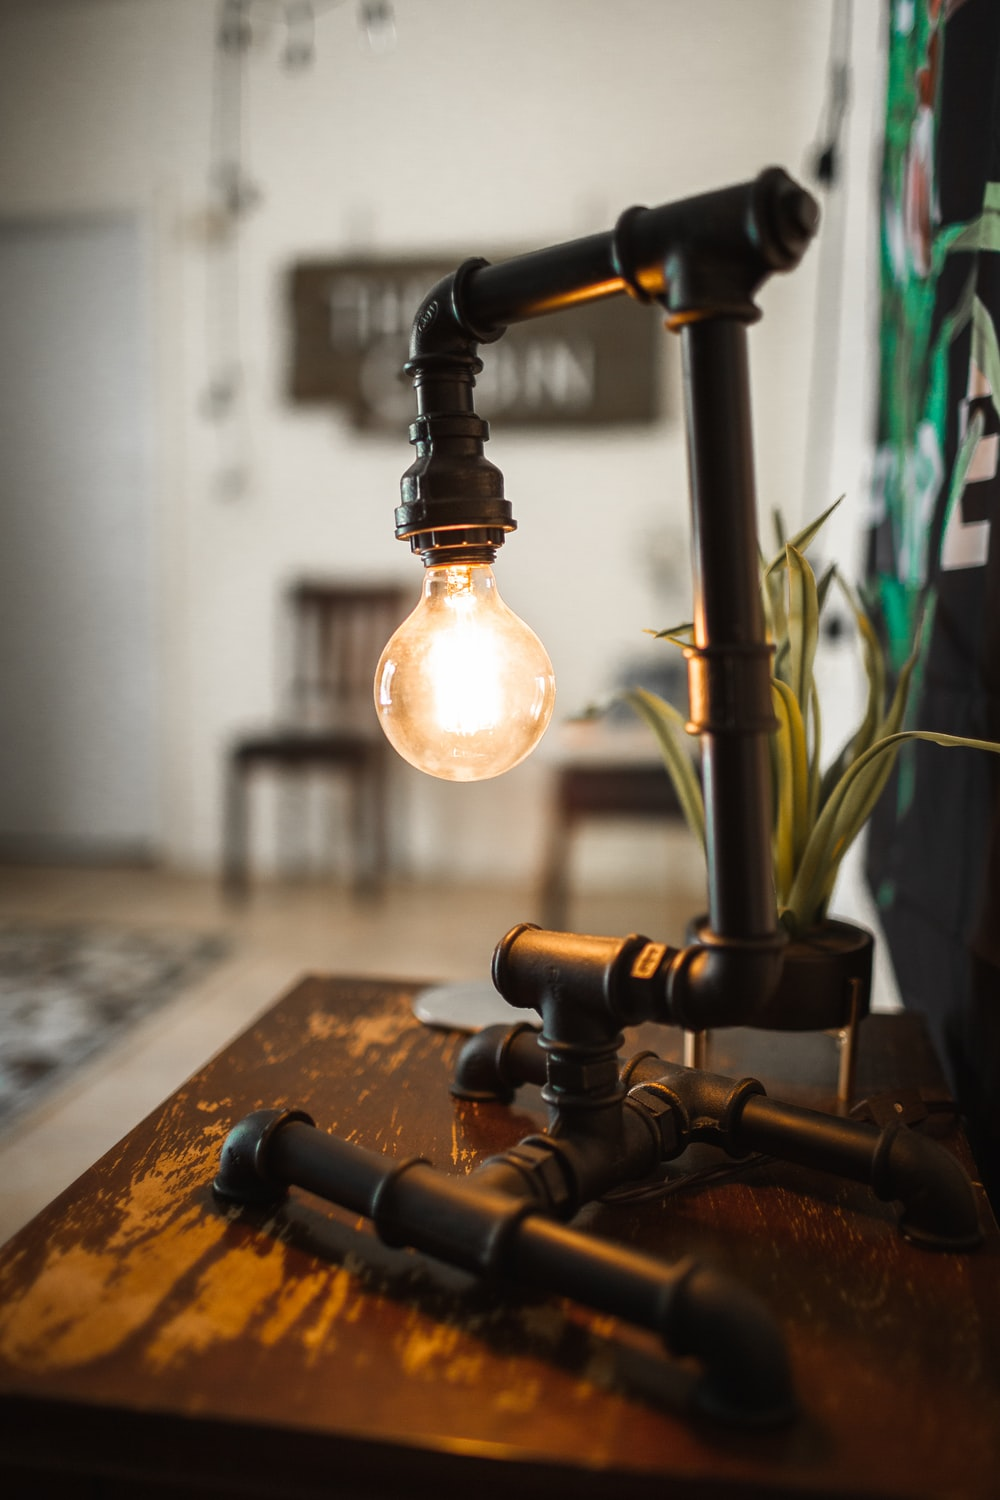 black pipe table lamp on wooden surface